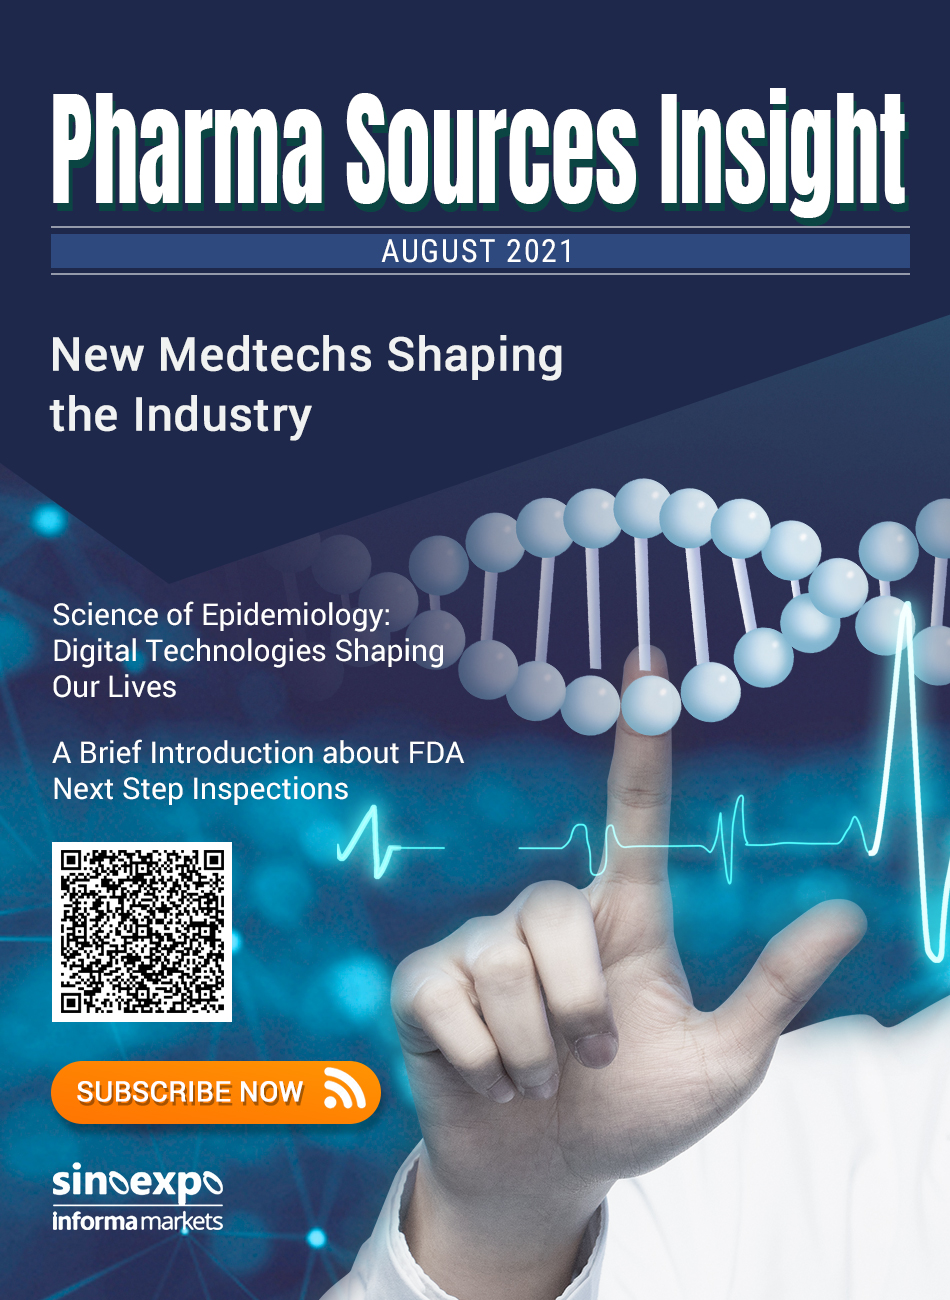 PSI August 2021: New Medtechs Shaping the Industry